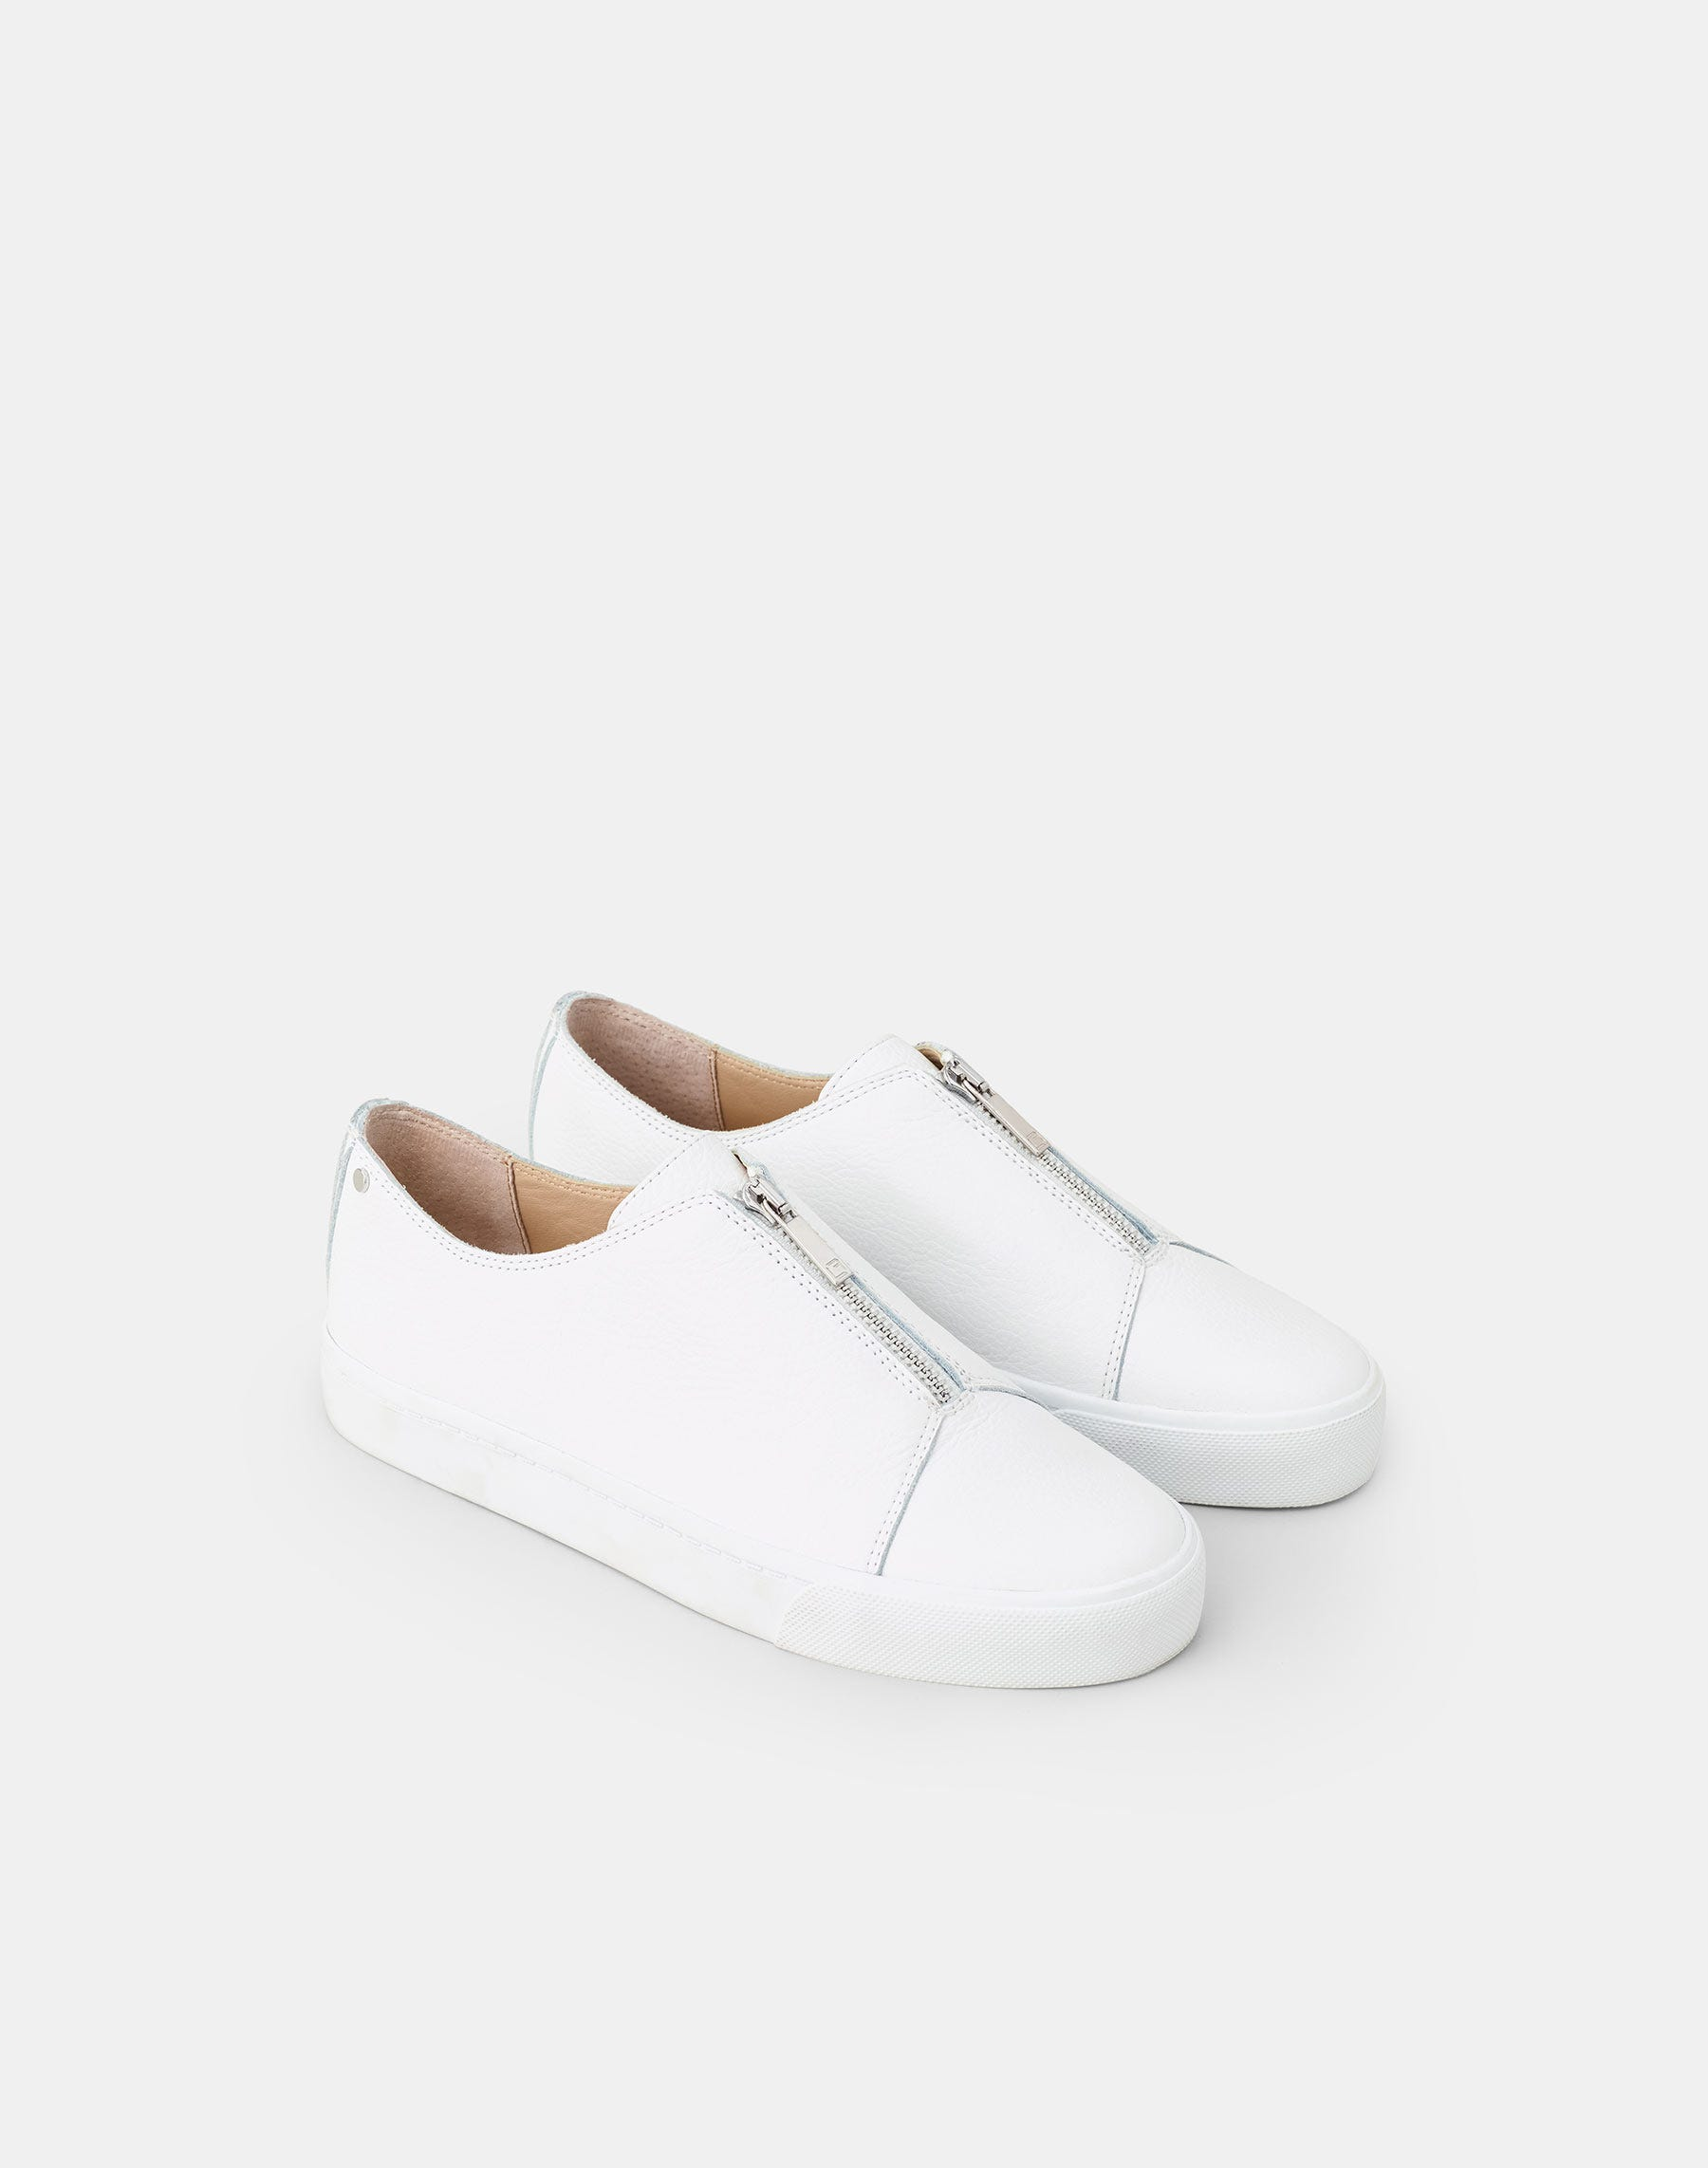 Lafayette 148 Pebbled Grain Leather Bade Sneaker In White